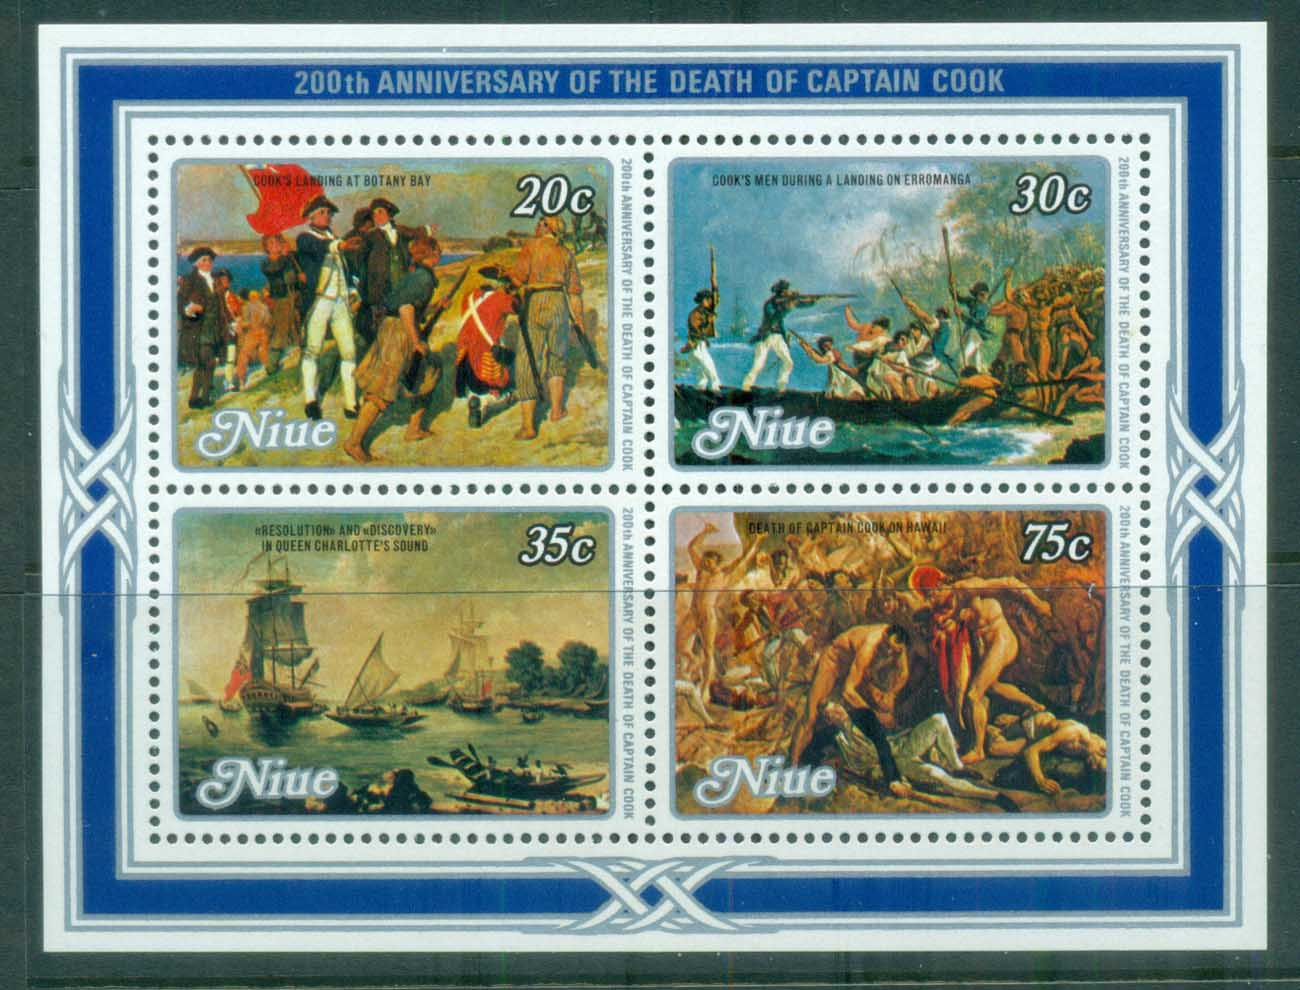 Niue 1979 Captain Cook 200th Death Anniv MS MUH